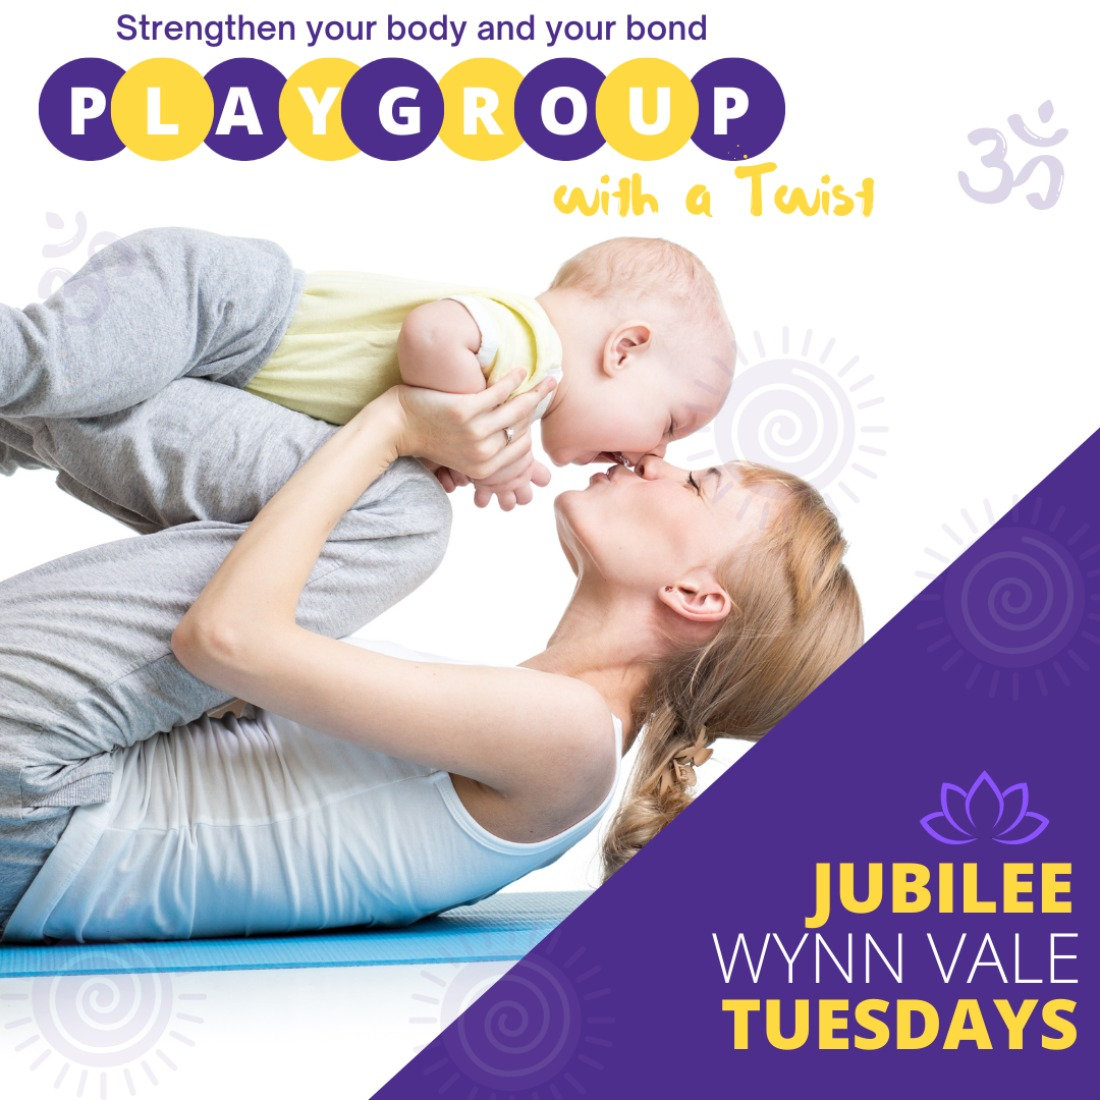 Jubilee Casual Classes Tuesdays $22